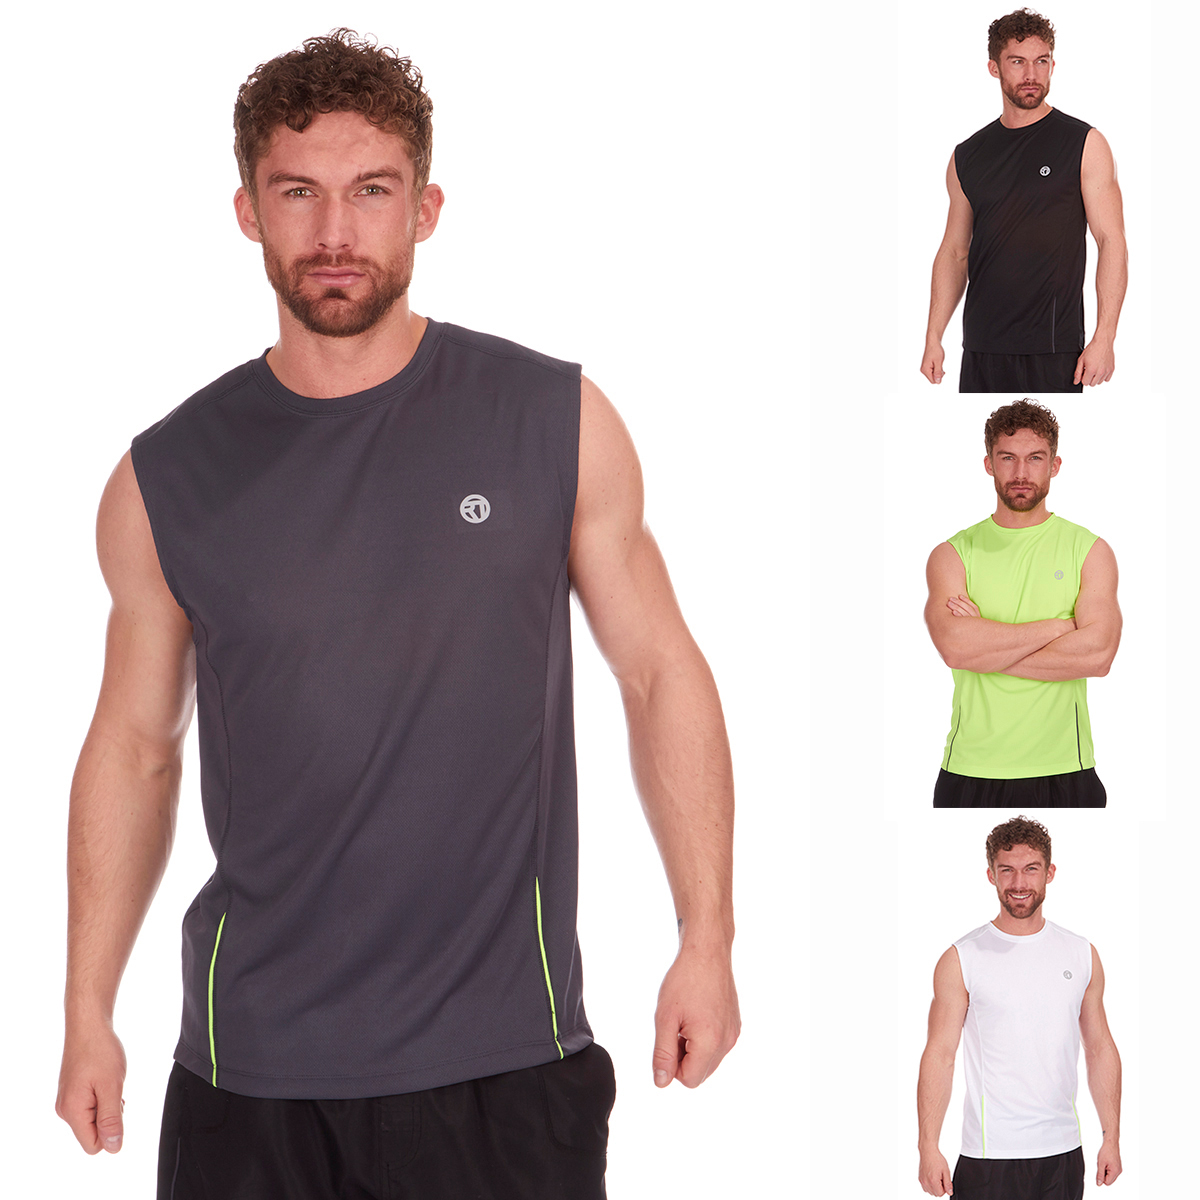 3667e9ed0084c Mens Activewear Sleeveless Sports Top Running Training Gym Vest Tank Top  Summer